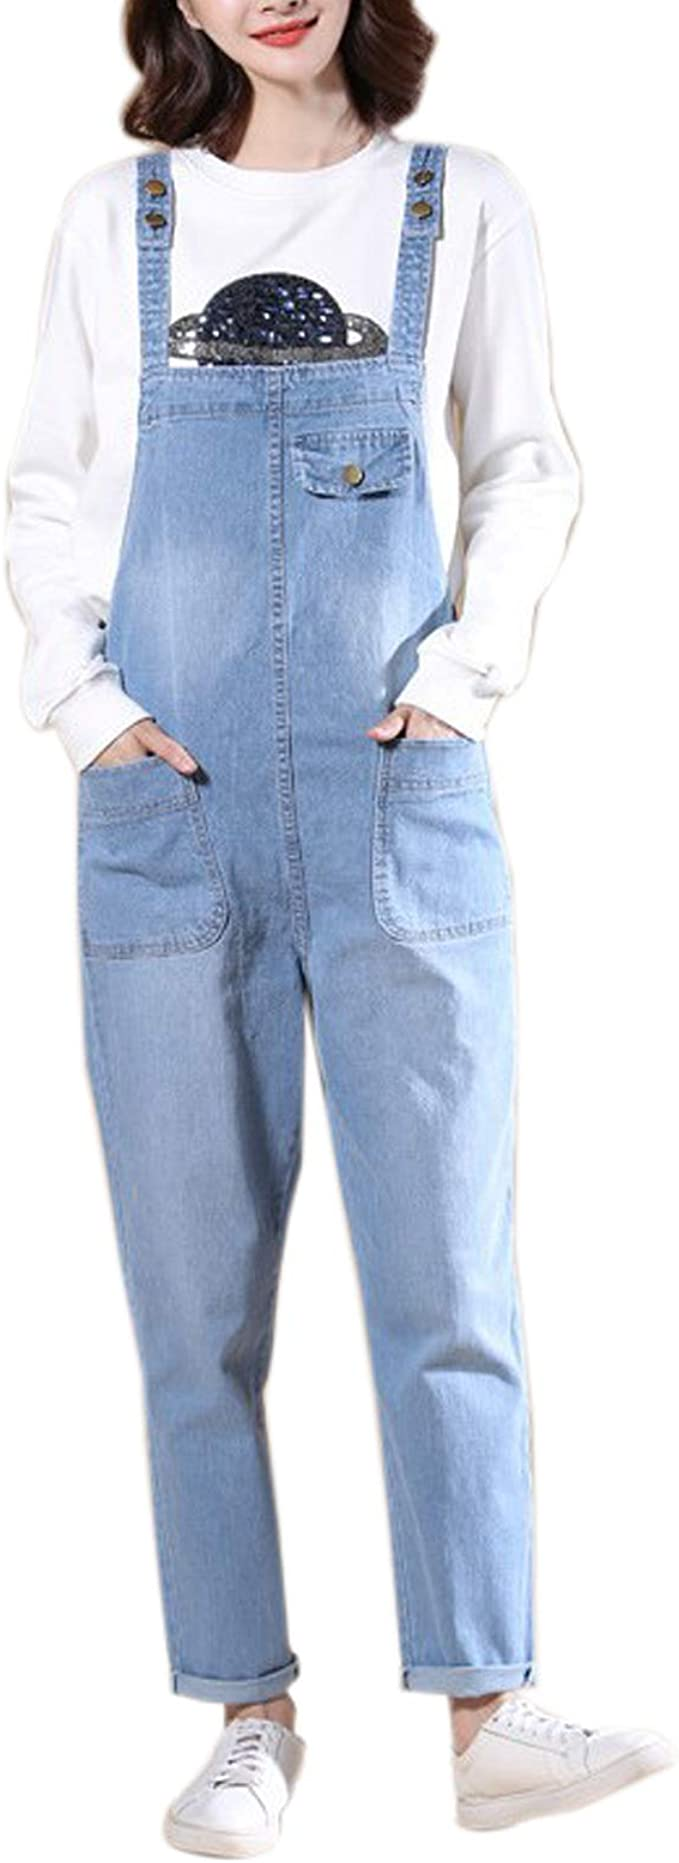 Elonglin Womens Dungarees Overalls Loose Fit Casual Baggy Pants Denim Bib Overall Jeans Jumpsuits Straps Demin Trousers Rompers